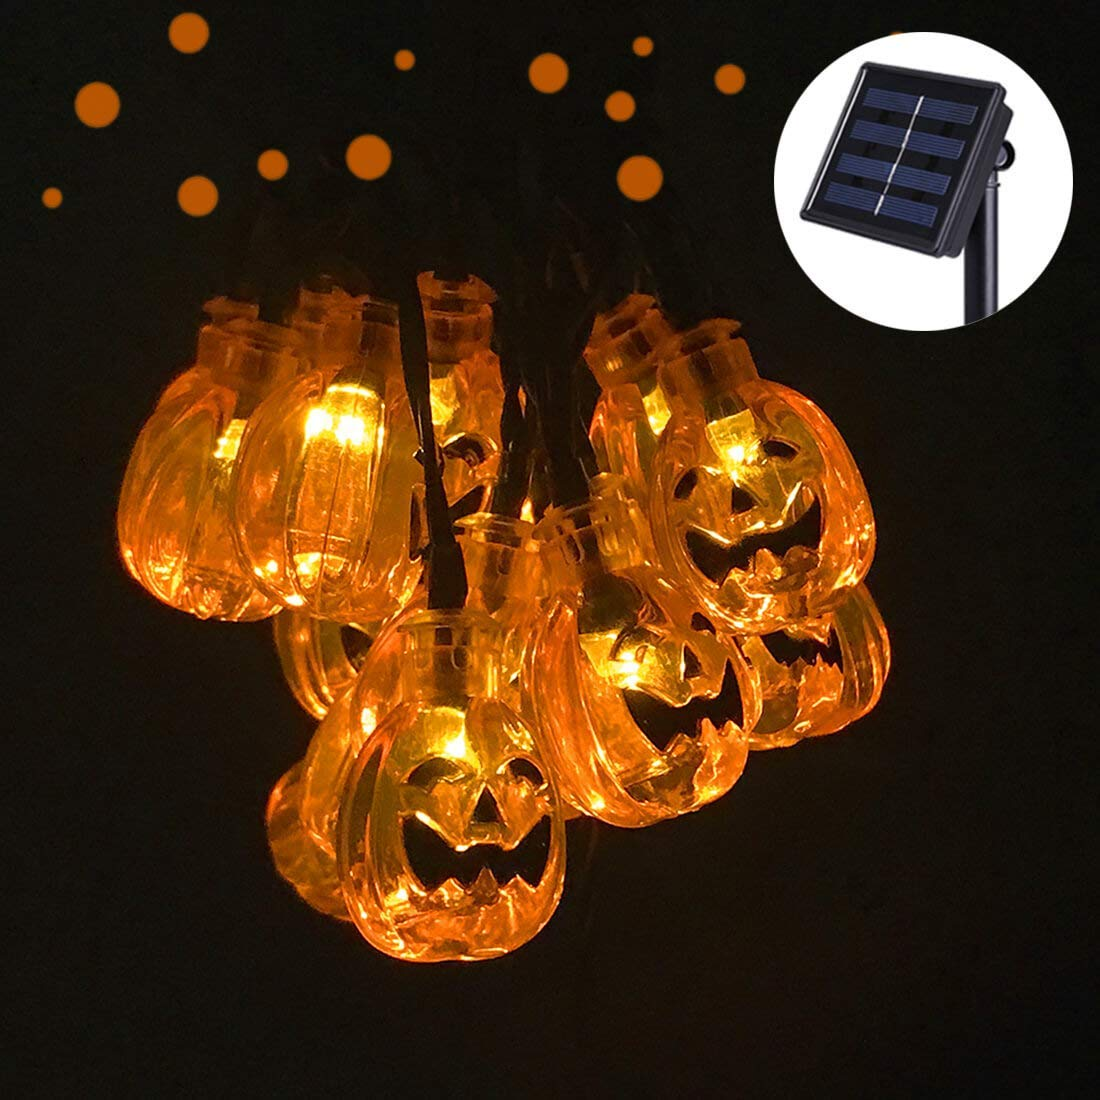 Get Quotations Semilits Solar String Lights Outdoor 30led Yard Decorations With Pumpkin Garden Decor For Christmas